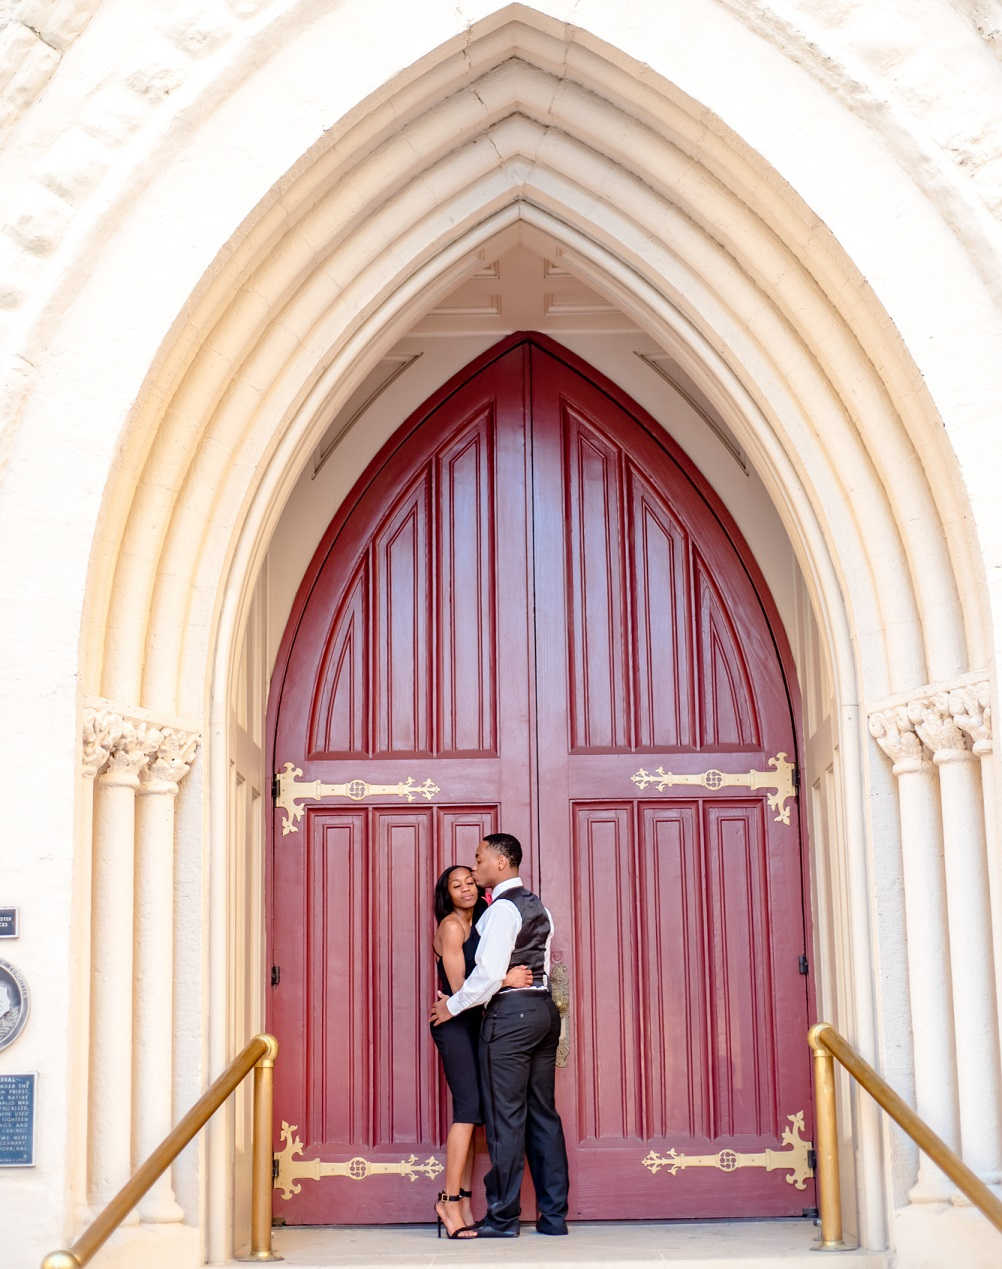 7 Myths About an Engagement And Wedding Photography